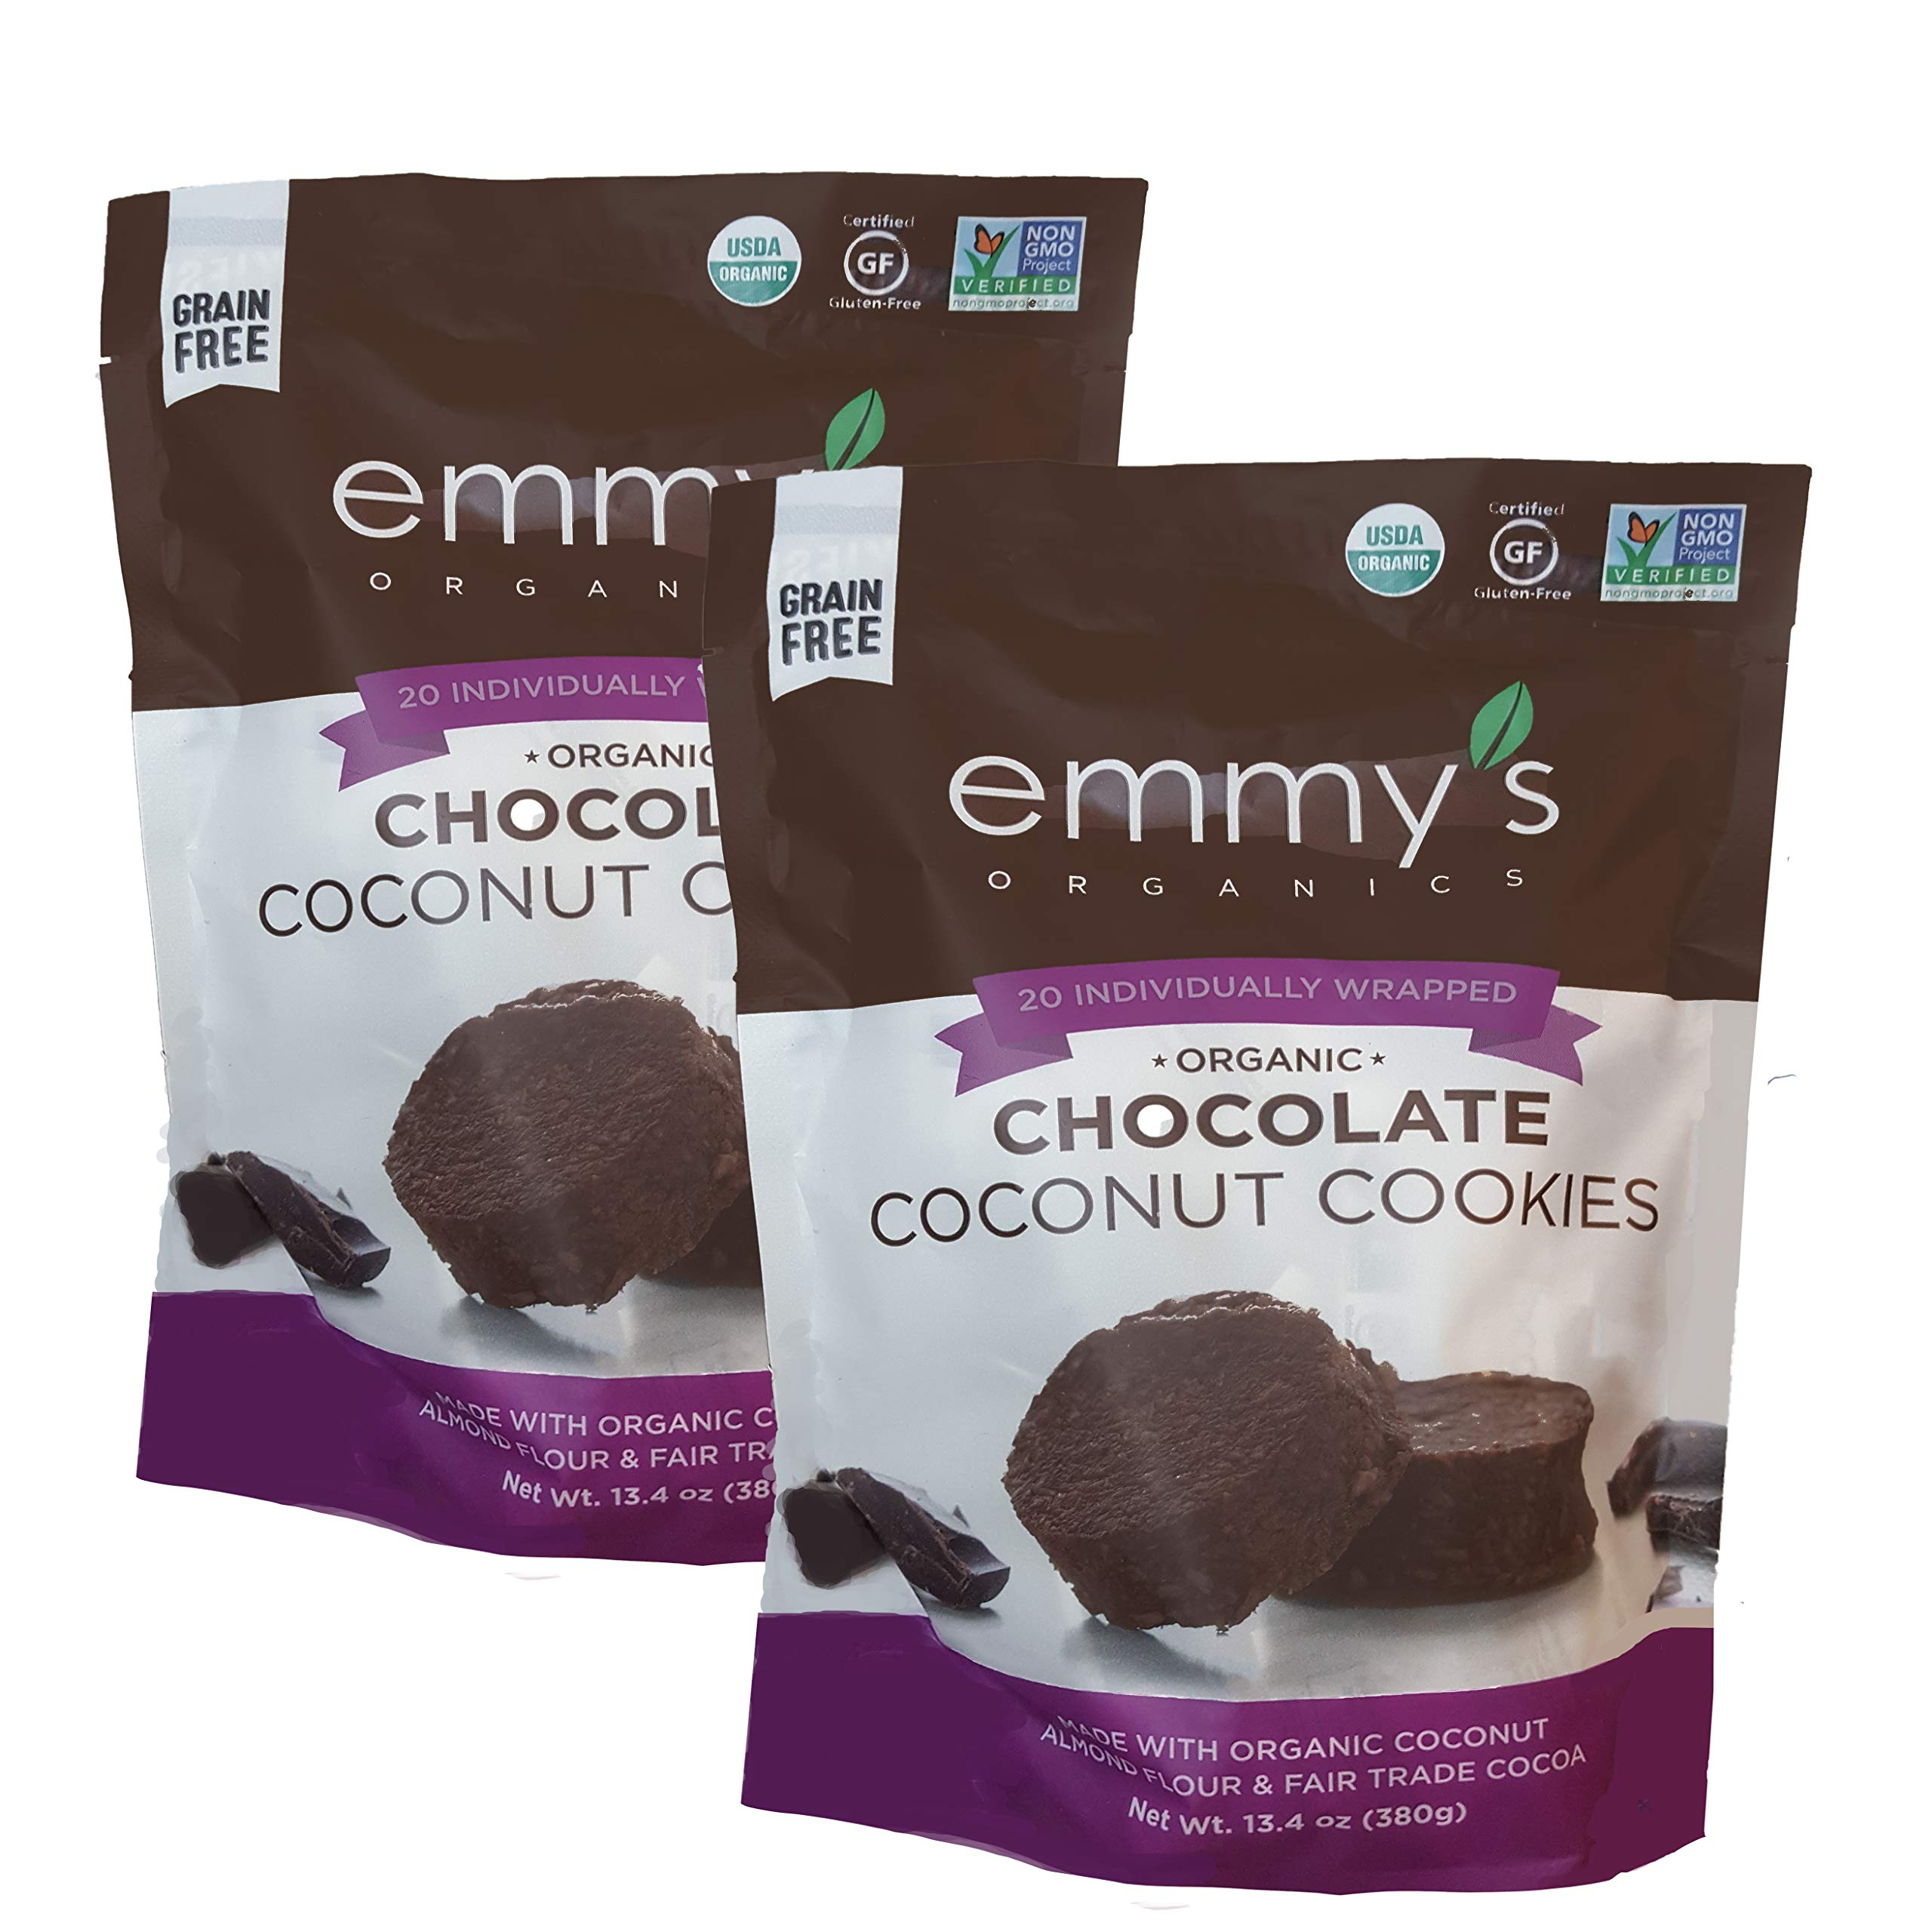 Emmy's Organic Coconut Cookies. 20 INDIVIDUALLY WRAPPED Cookies. 13.4 oz. Made with Almond Flour and Coconut Oil. Gluten Free Grain Free Vegan Kosher Non-GMO. by Emmy's Organics